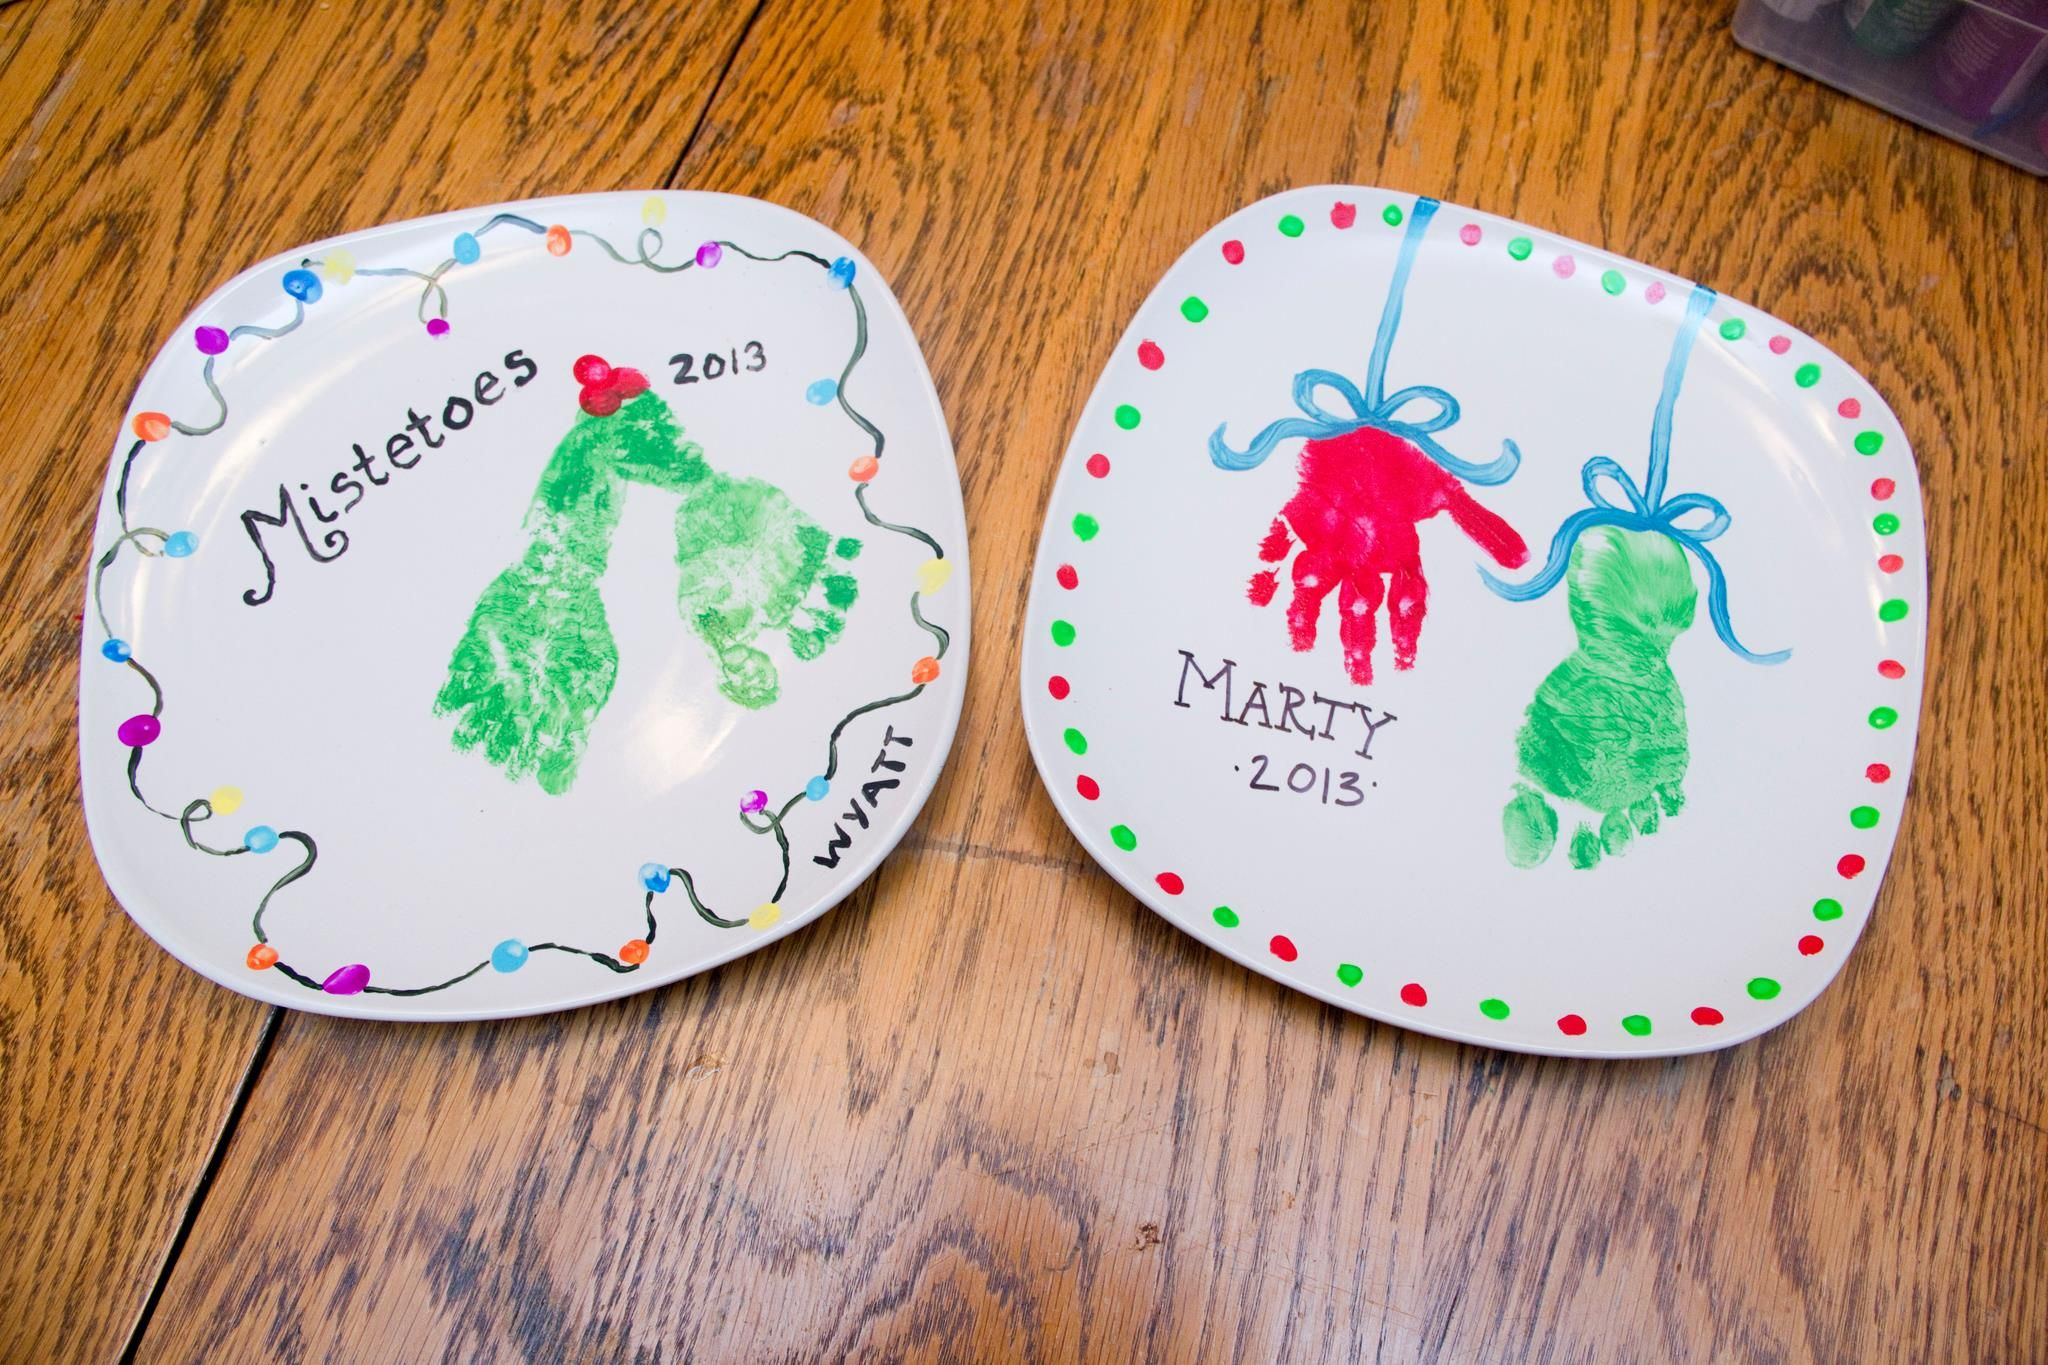 Painted Christmas Plates We Used Acrylic Paint But It Would Have Been Better To Use Ceramic Paint So Th Hand Print Tree Christmas Plates Kids Christmas Plates